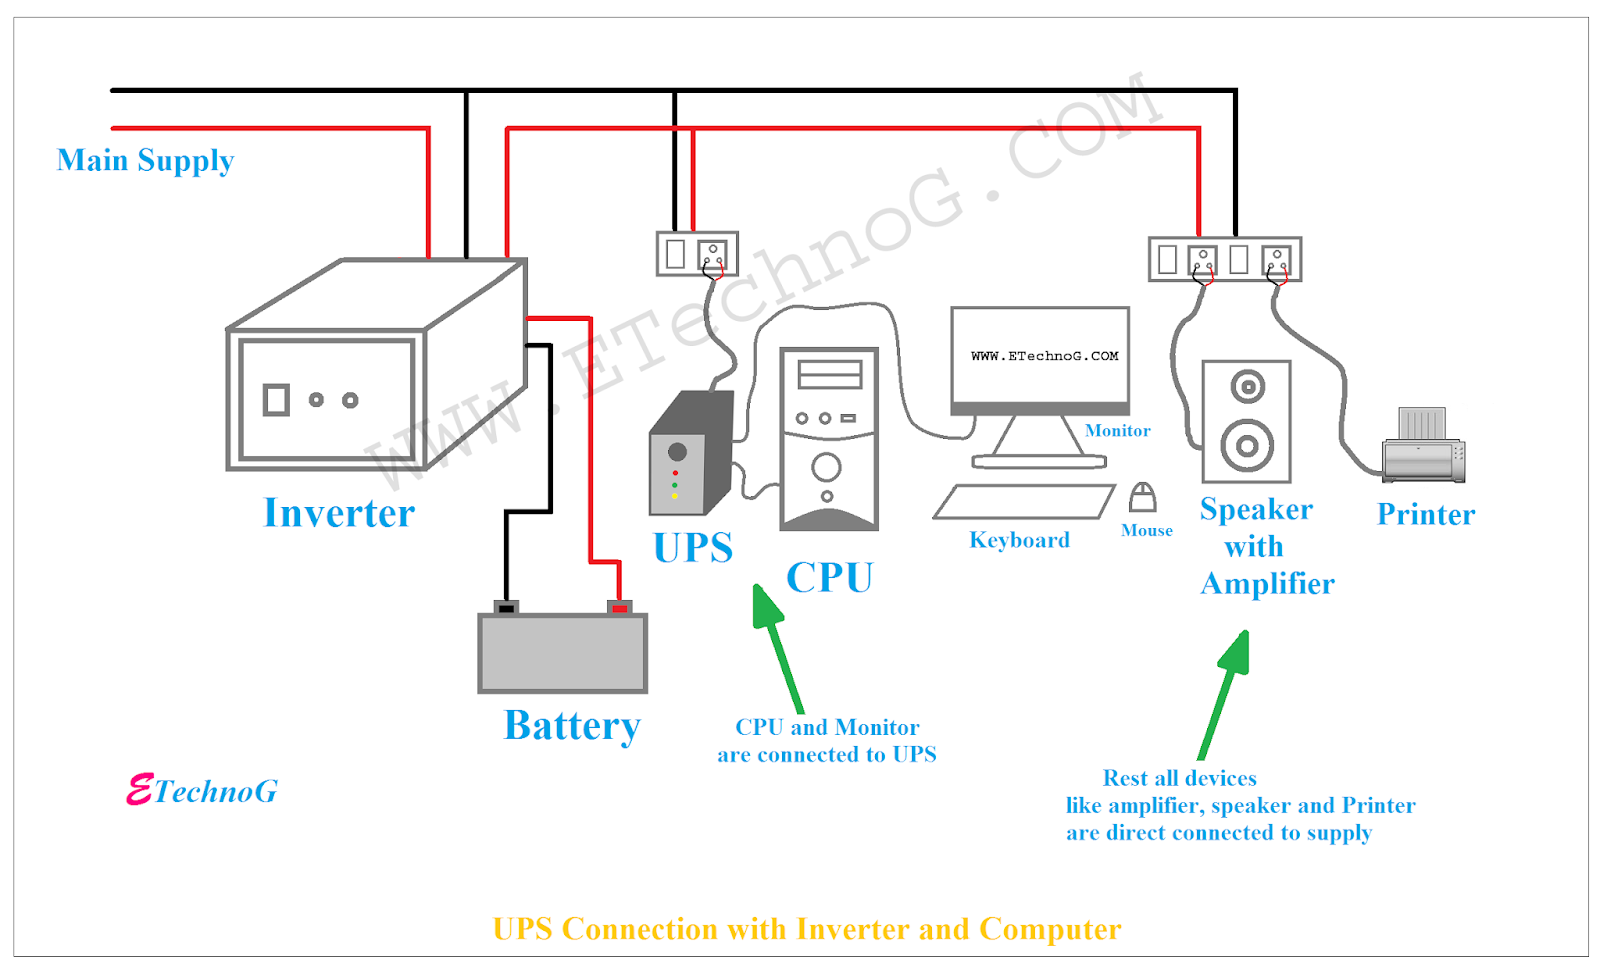 small resolution of proper ups connection with loads inverter computer at home etechnogups connection ups connection diagram